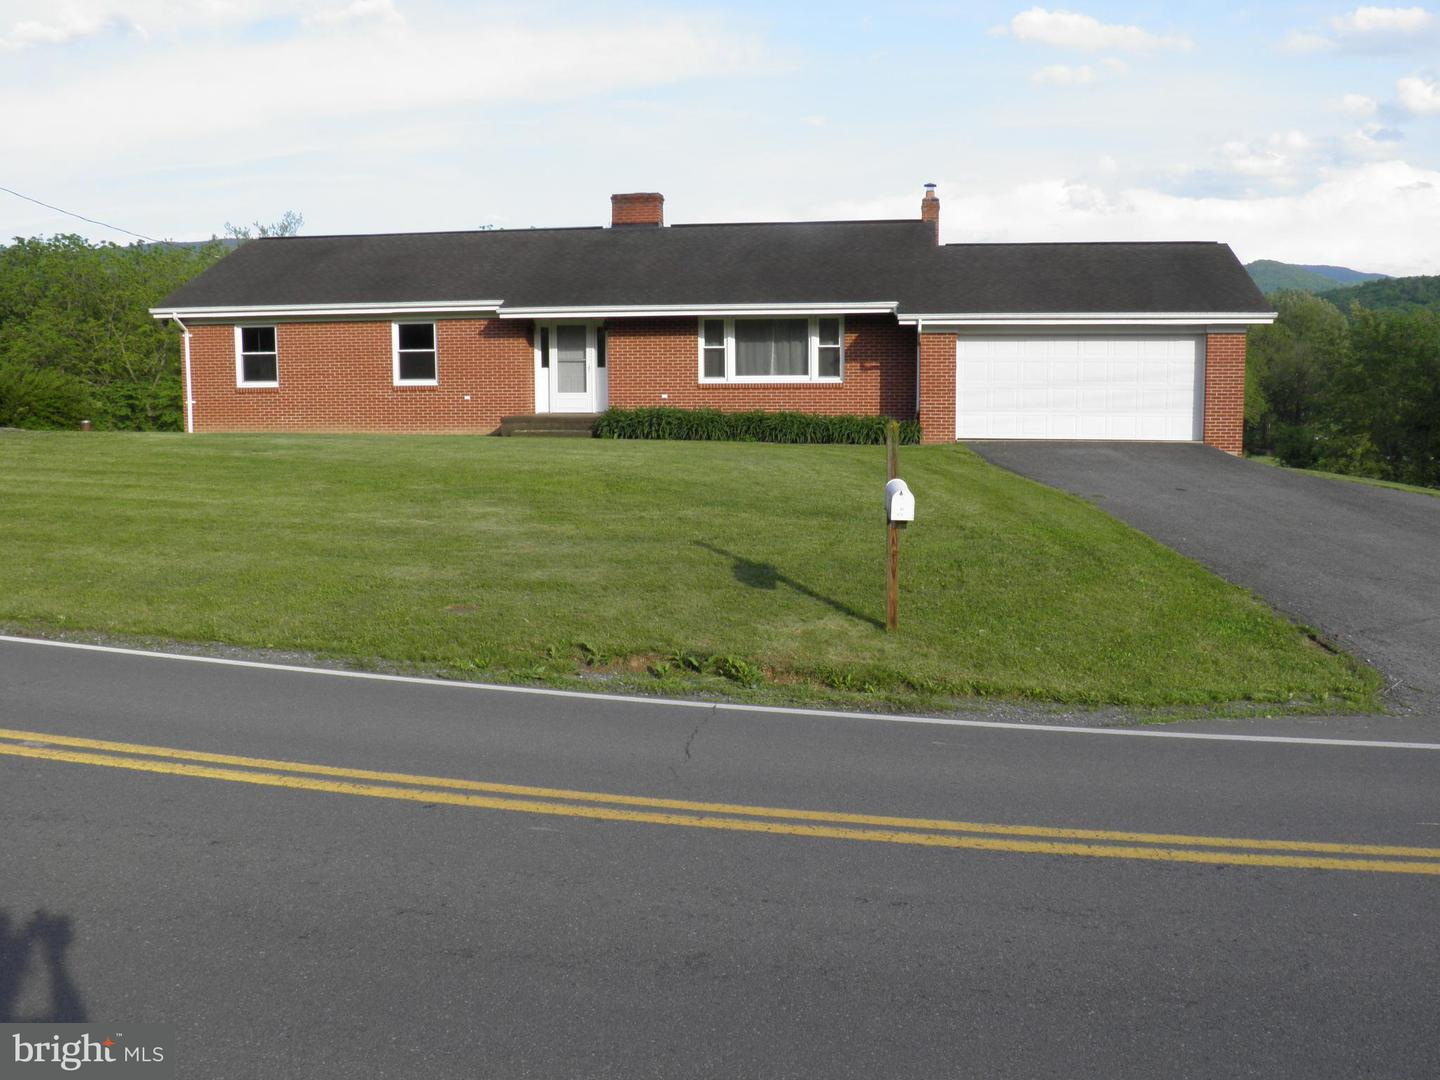 Single Family for Sale at 476 Sweedlin Valley Rd Brandywine, West Virginia 26802 United States